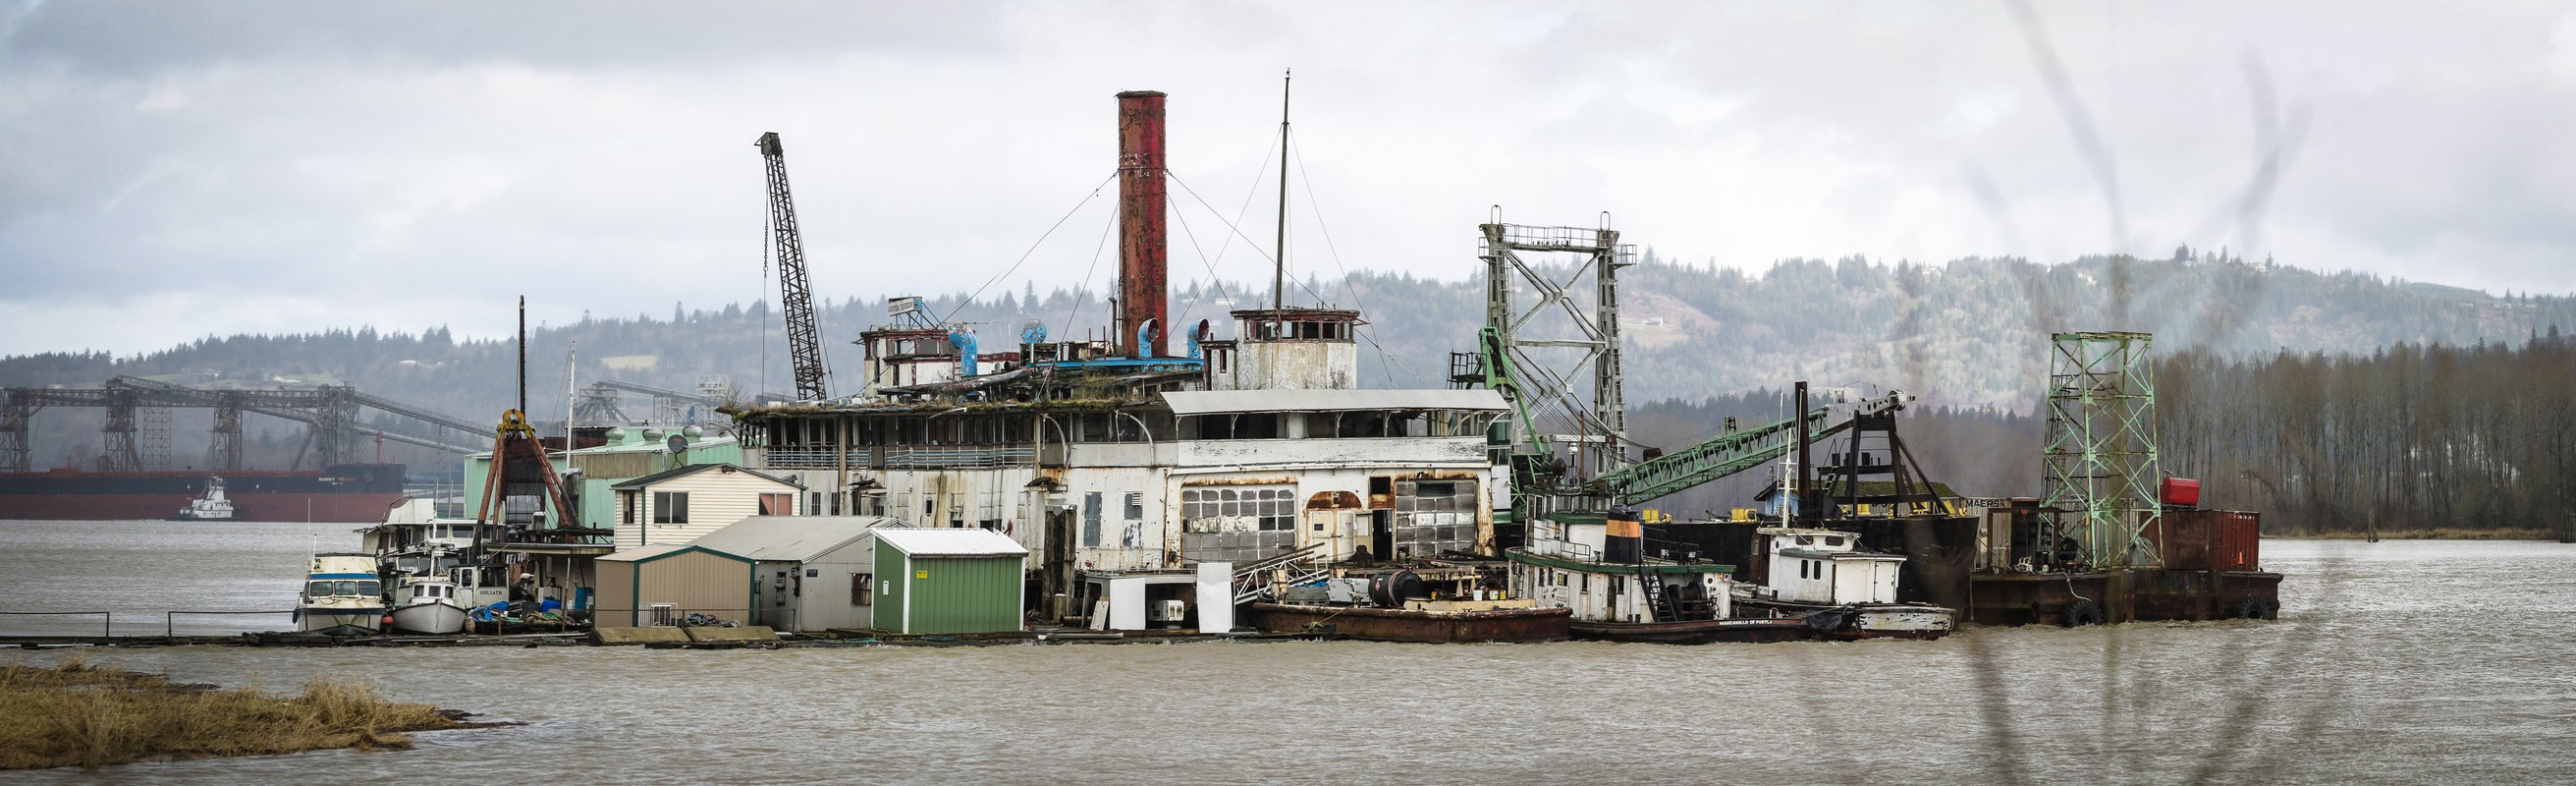 140216The SS Shasta River Queen©2014KennethBenjaminReed The SS Shasta (River Queen)